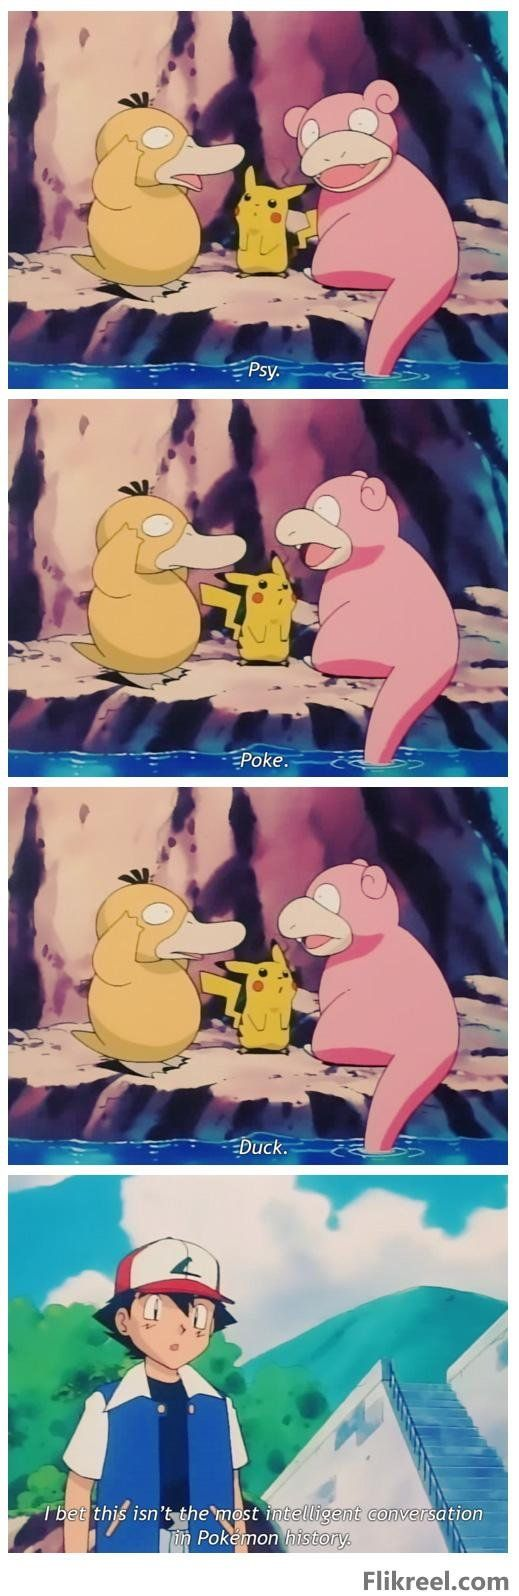 Pokemon Conversations  // funny pictures - funny photos - funny images - funny pics - funny quotes - #lol #humor #funnypictures